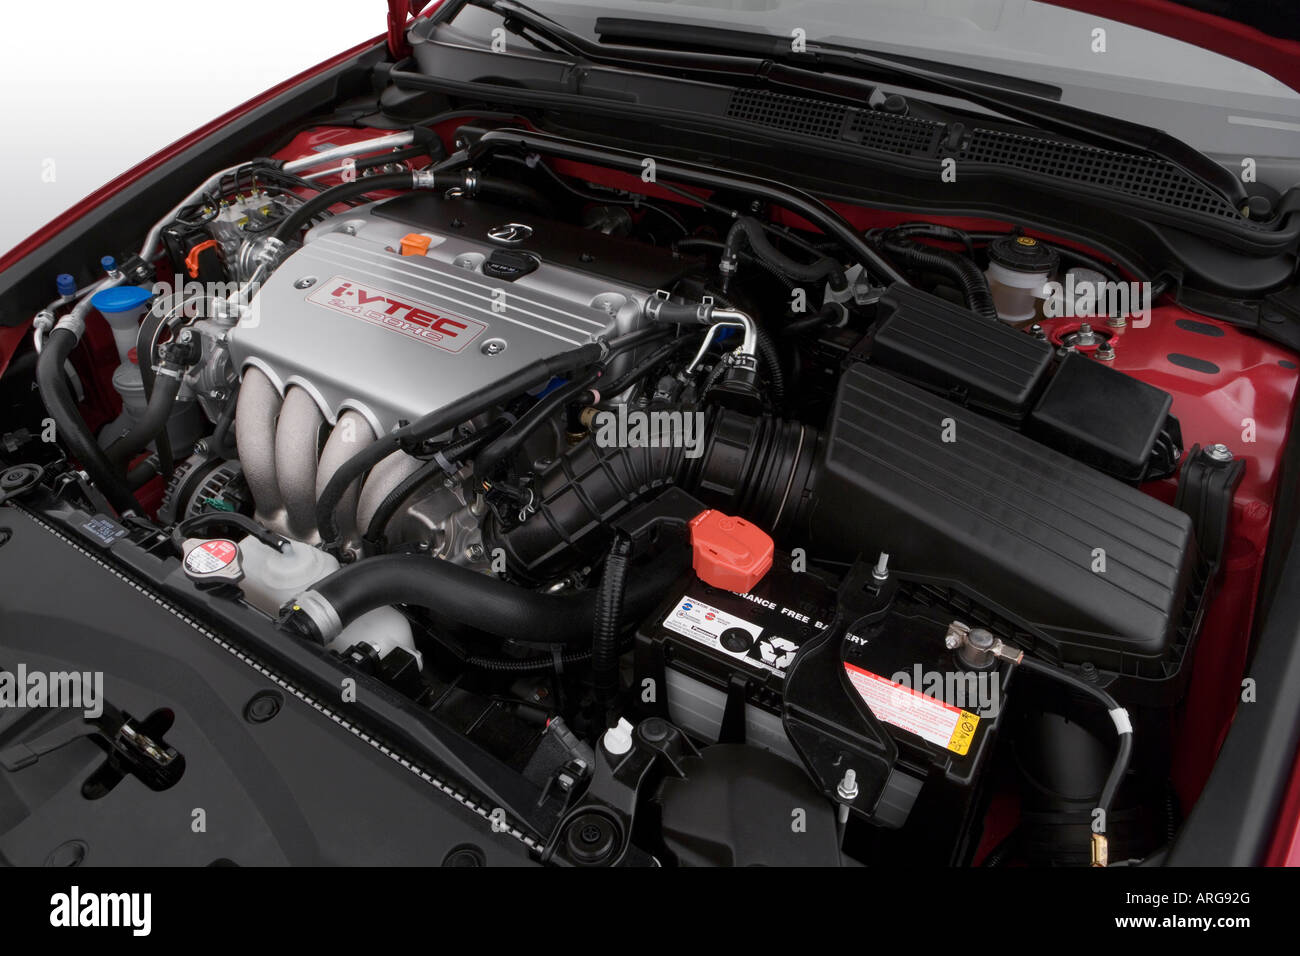 Acura TSX In Red Engine Stock Photo Alamy - 2007 acura tsx engine